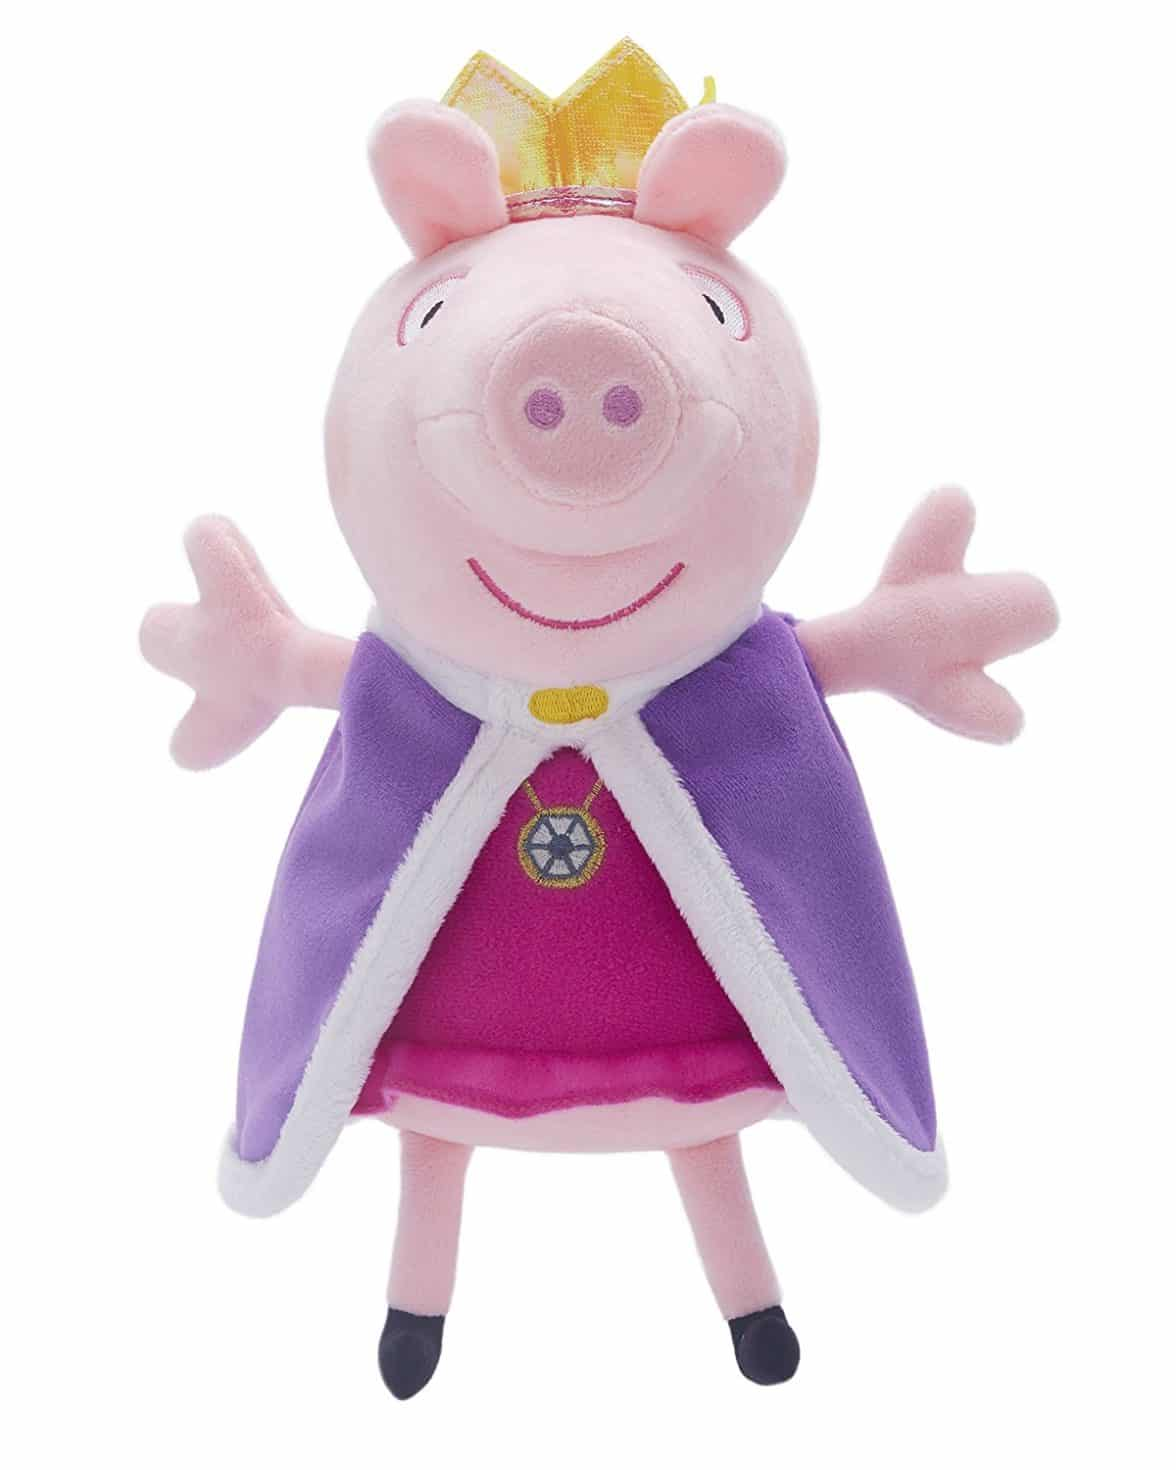 Peppa Pig Royal Princess Peppa 25cm Super Soft Plush Toy